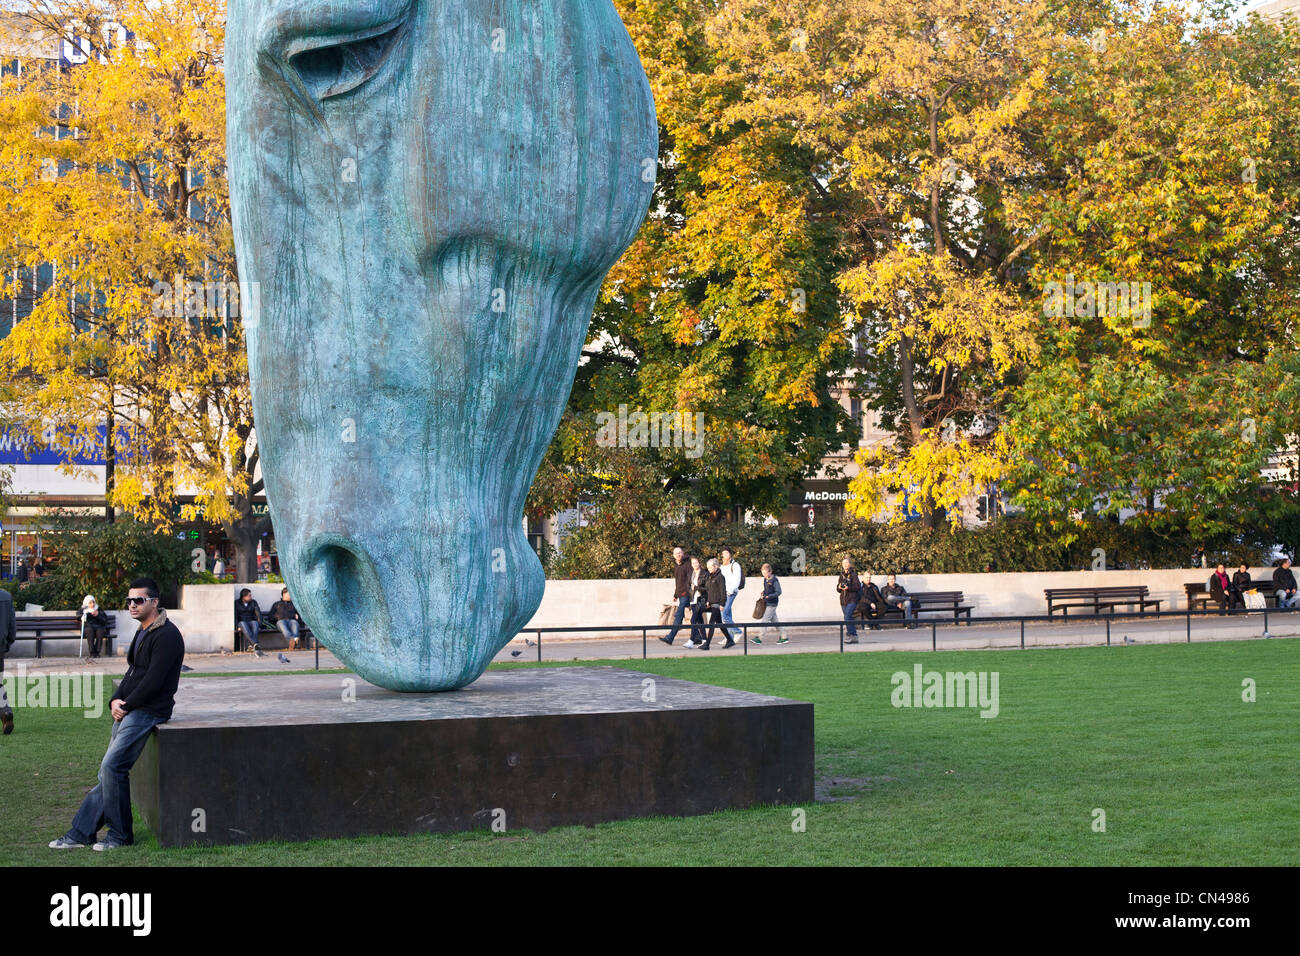 United Kingdom, London, Marble Arch, bronze sculpture called Horse at water by Nic Fiddian Green - Stock Image